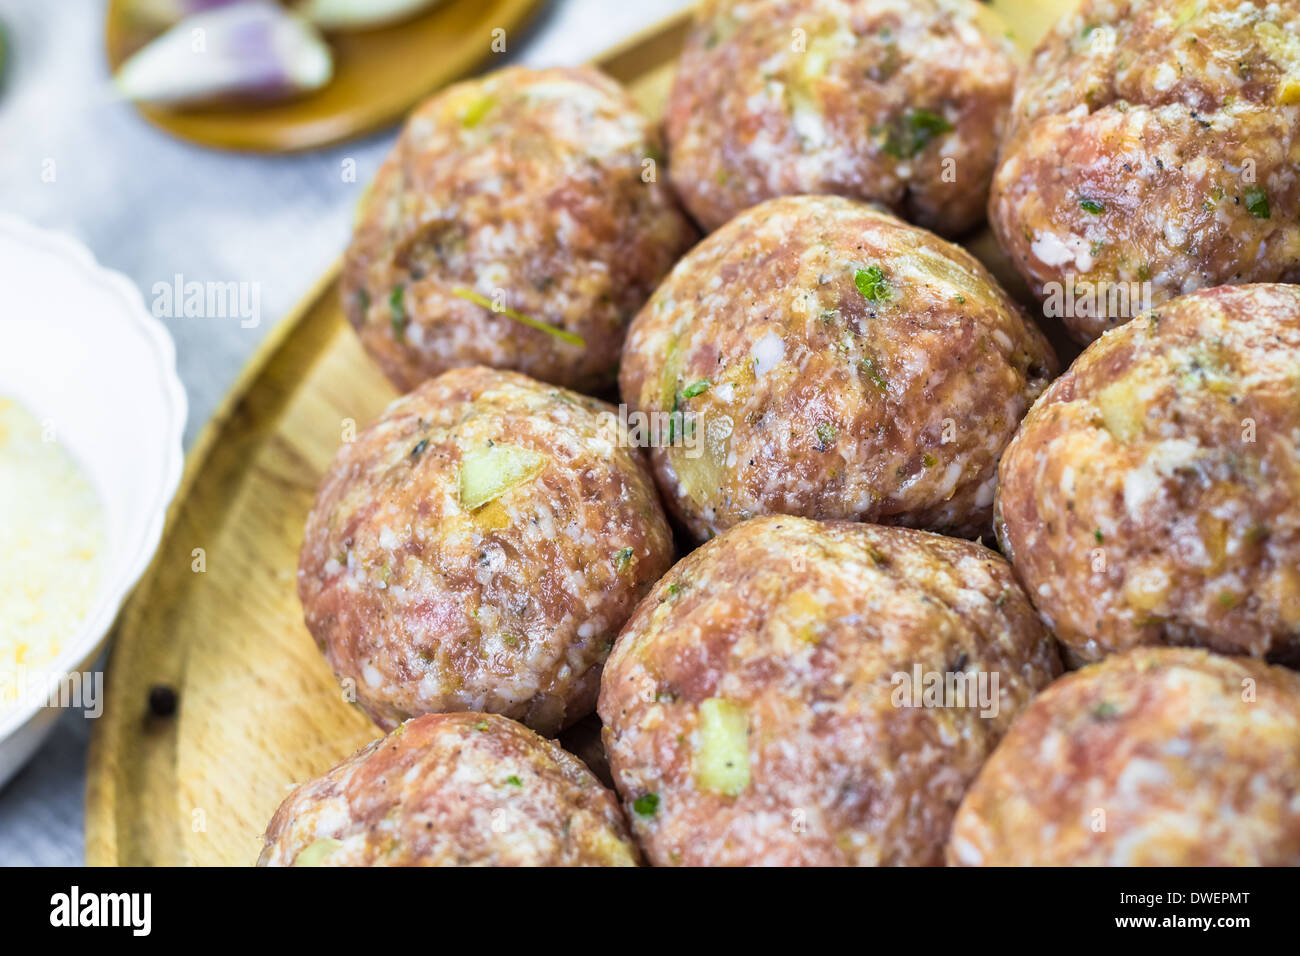 Raw meat balls of minced beef prepared for roll in breadcrumbs - Stock Image